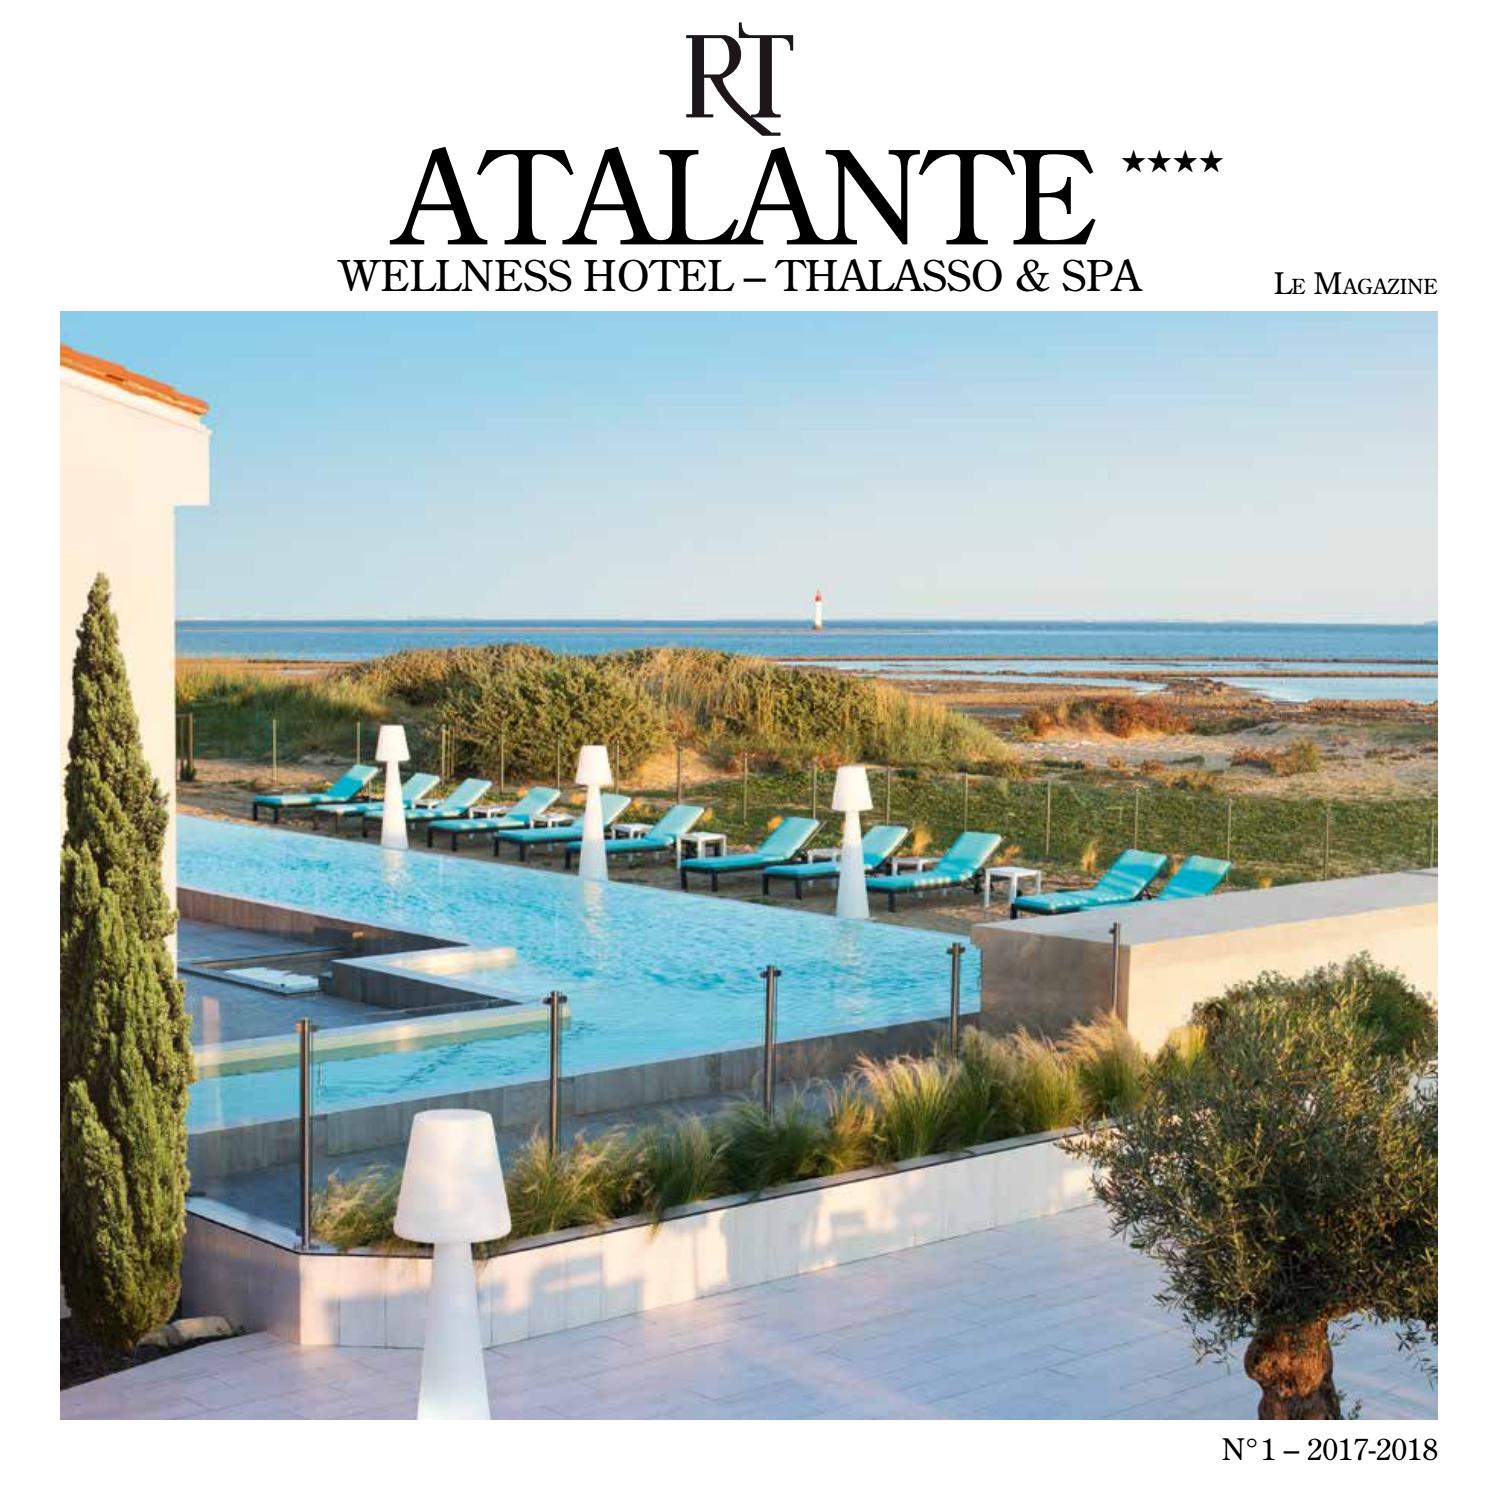 rt atalante wellness h tel thalasso spa by nhpublishing issuu. Black Bedroom Furniture Sets. Home Design Ideas